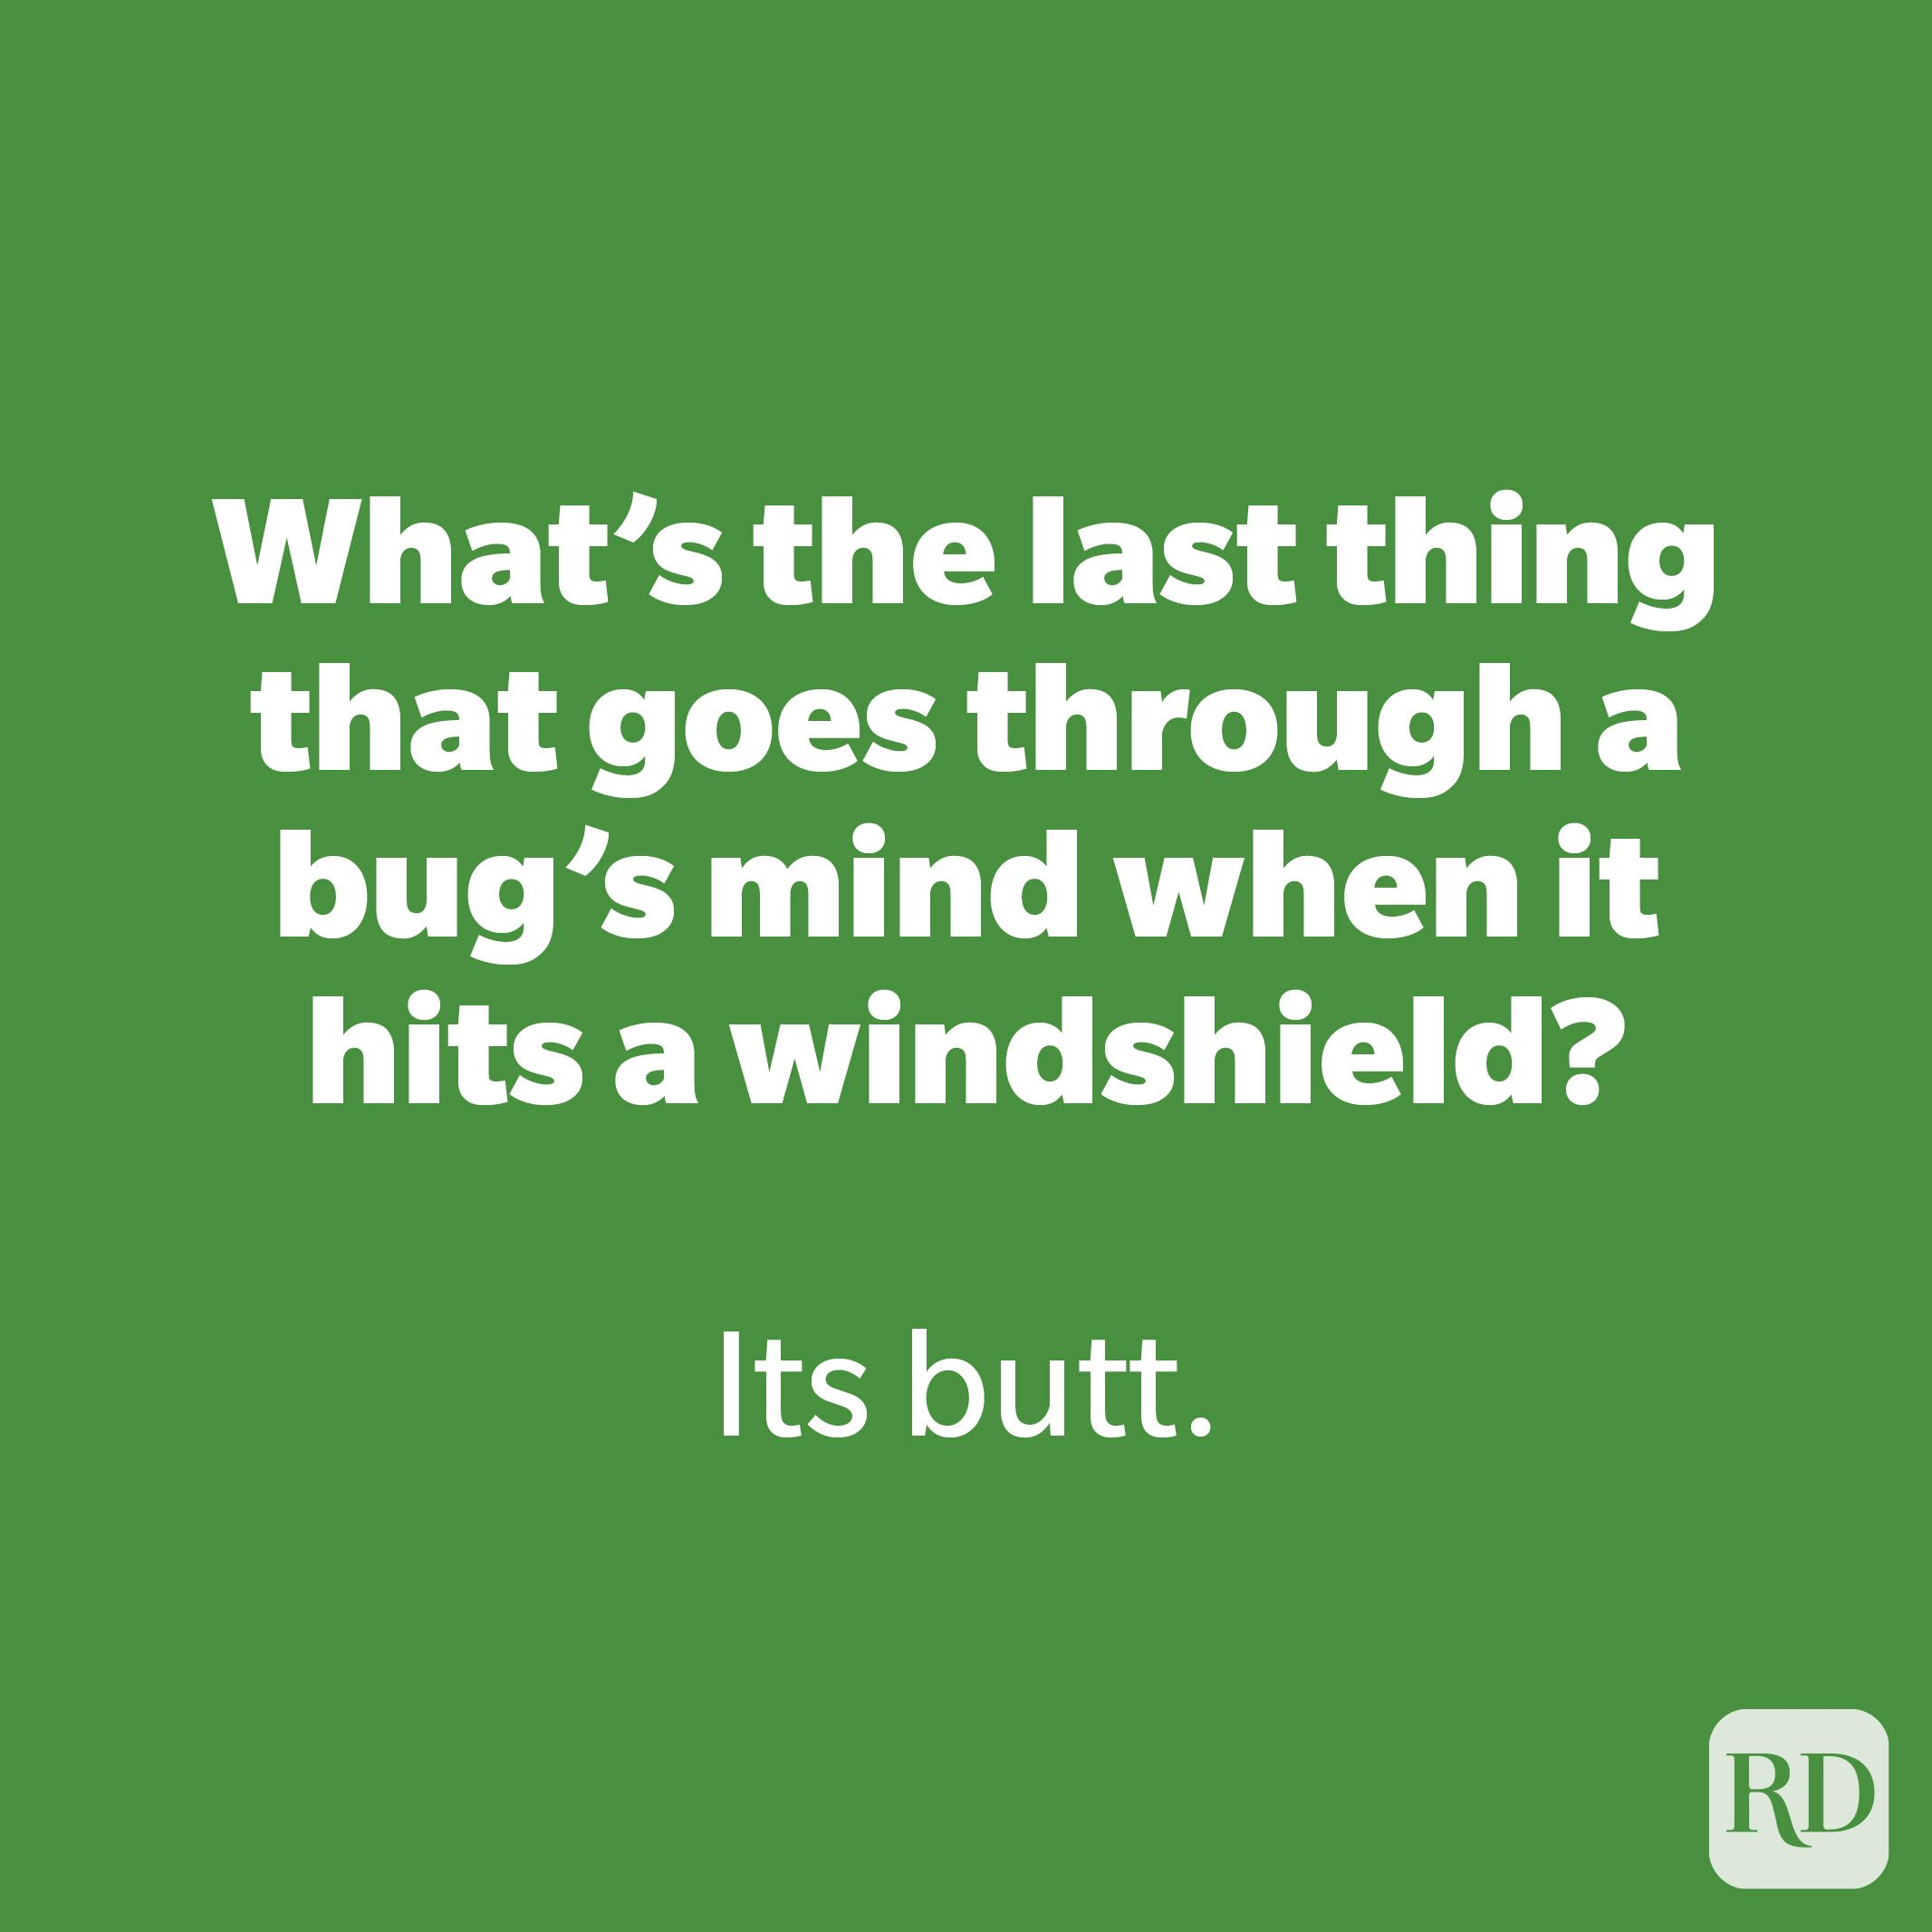 What's the last thing that goes through a bug's mind when it hits a windshield?